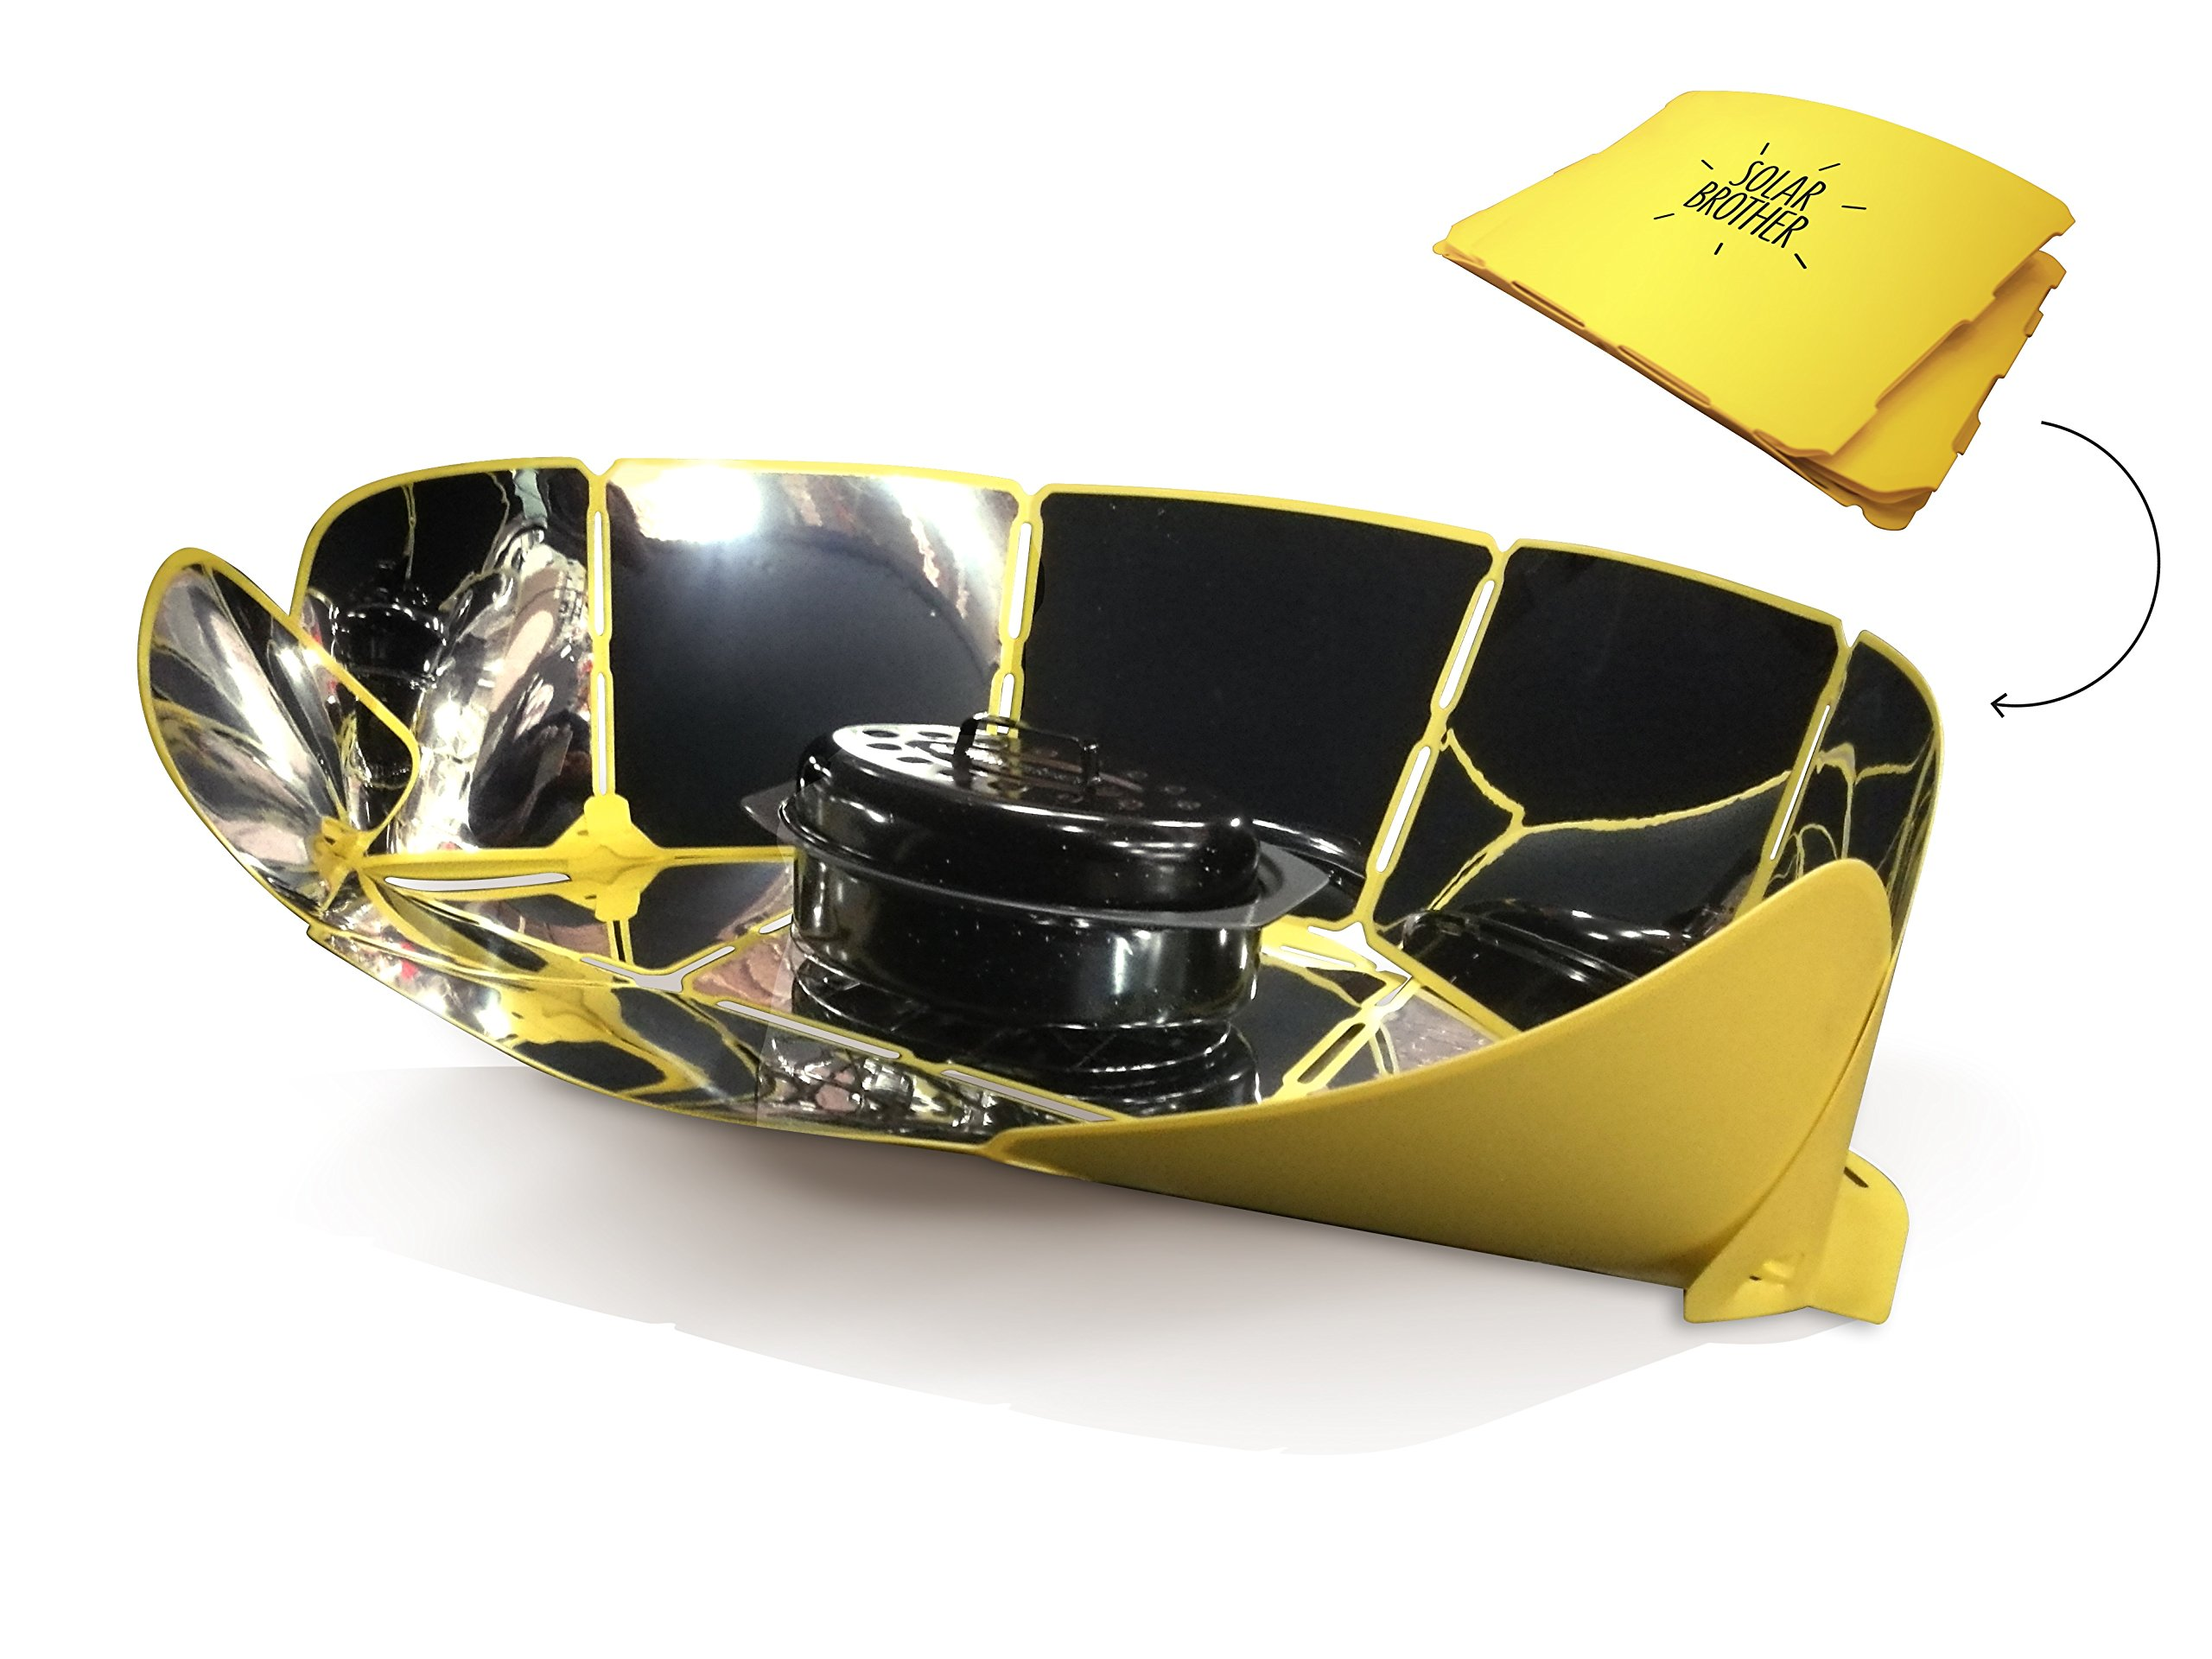 SUNGOOD Solar Cooker 2